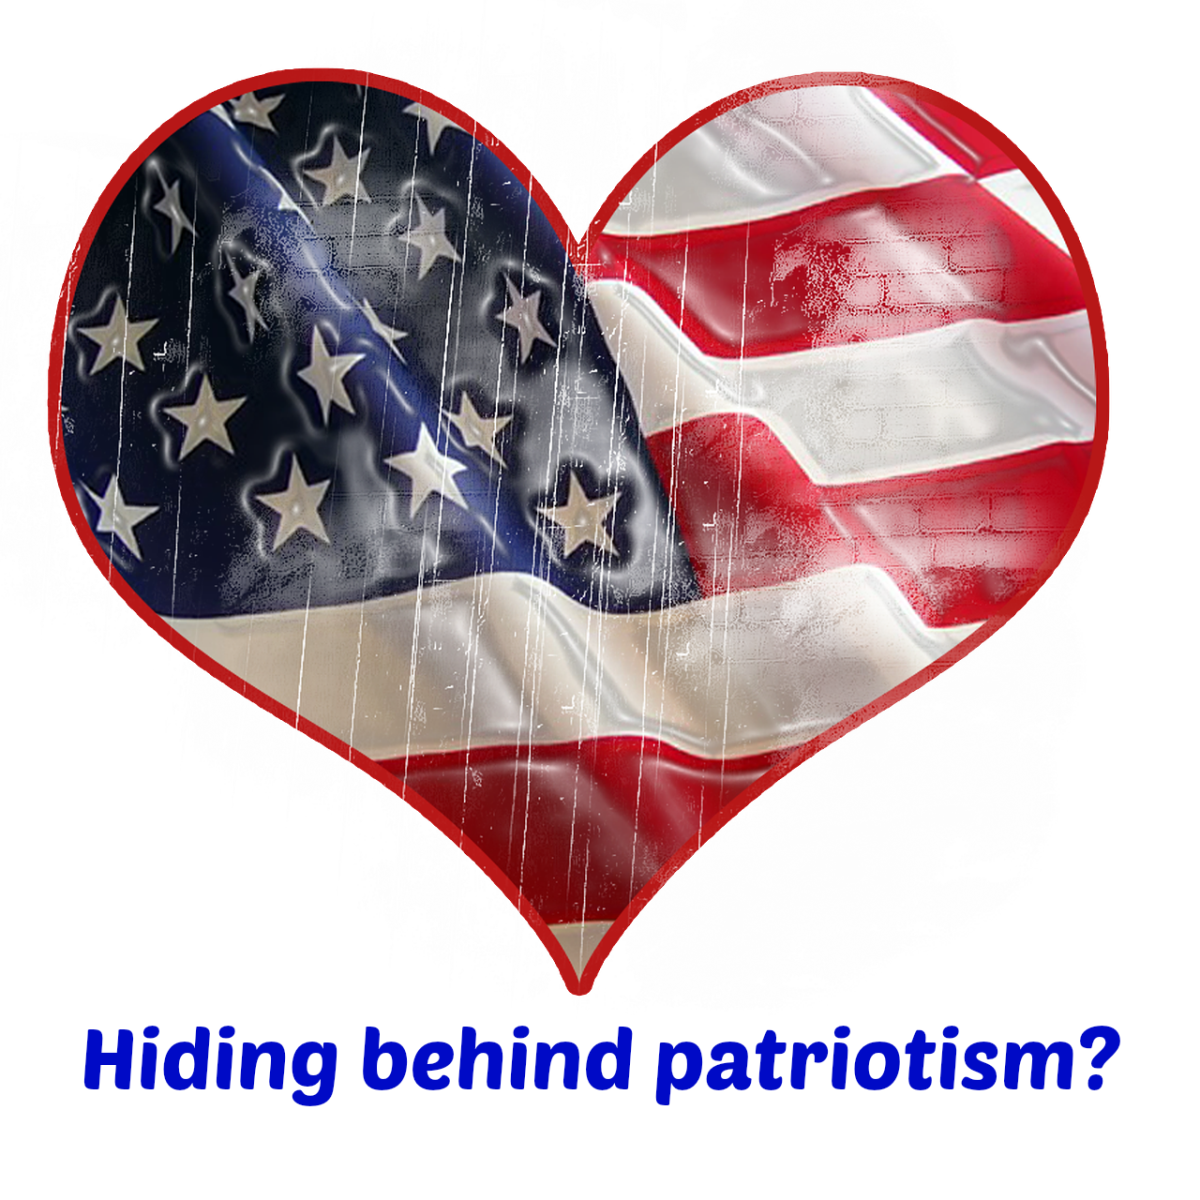 Do political scoundrels cloak themselves in the flag to hide their lack of rational argument?